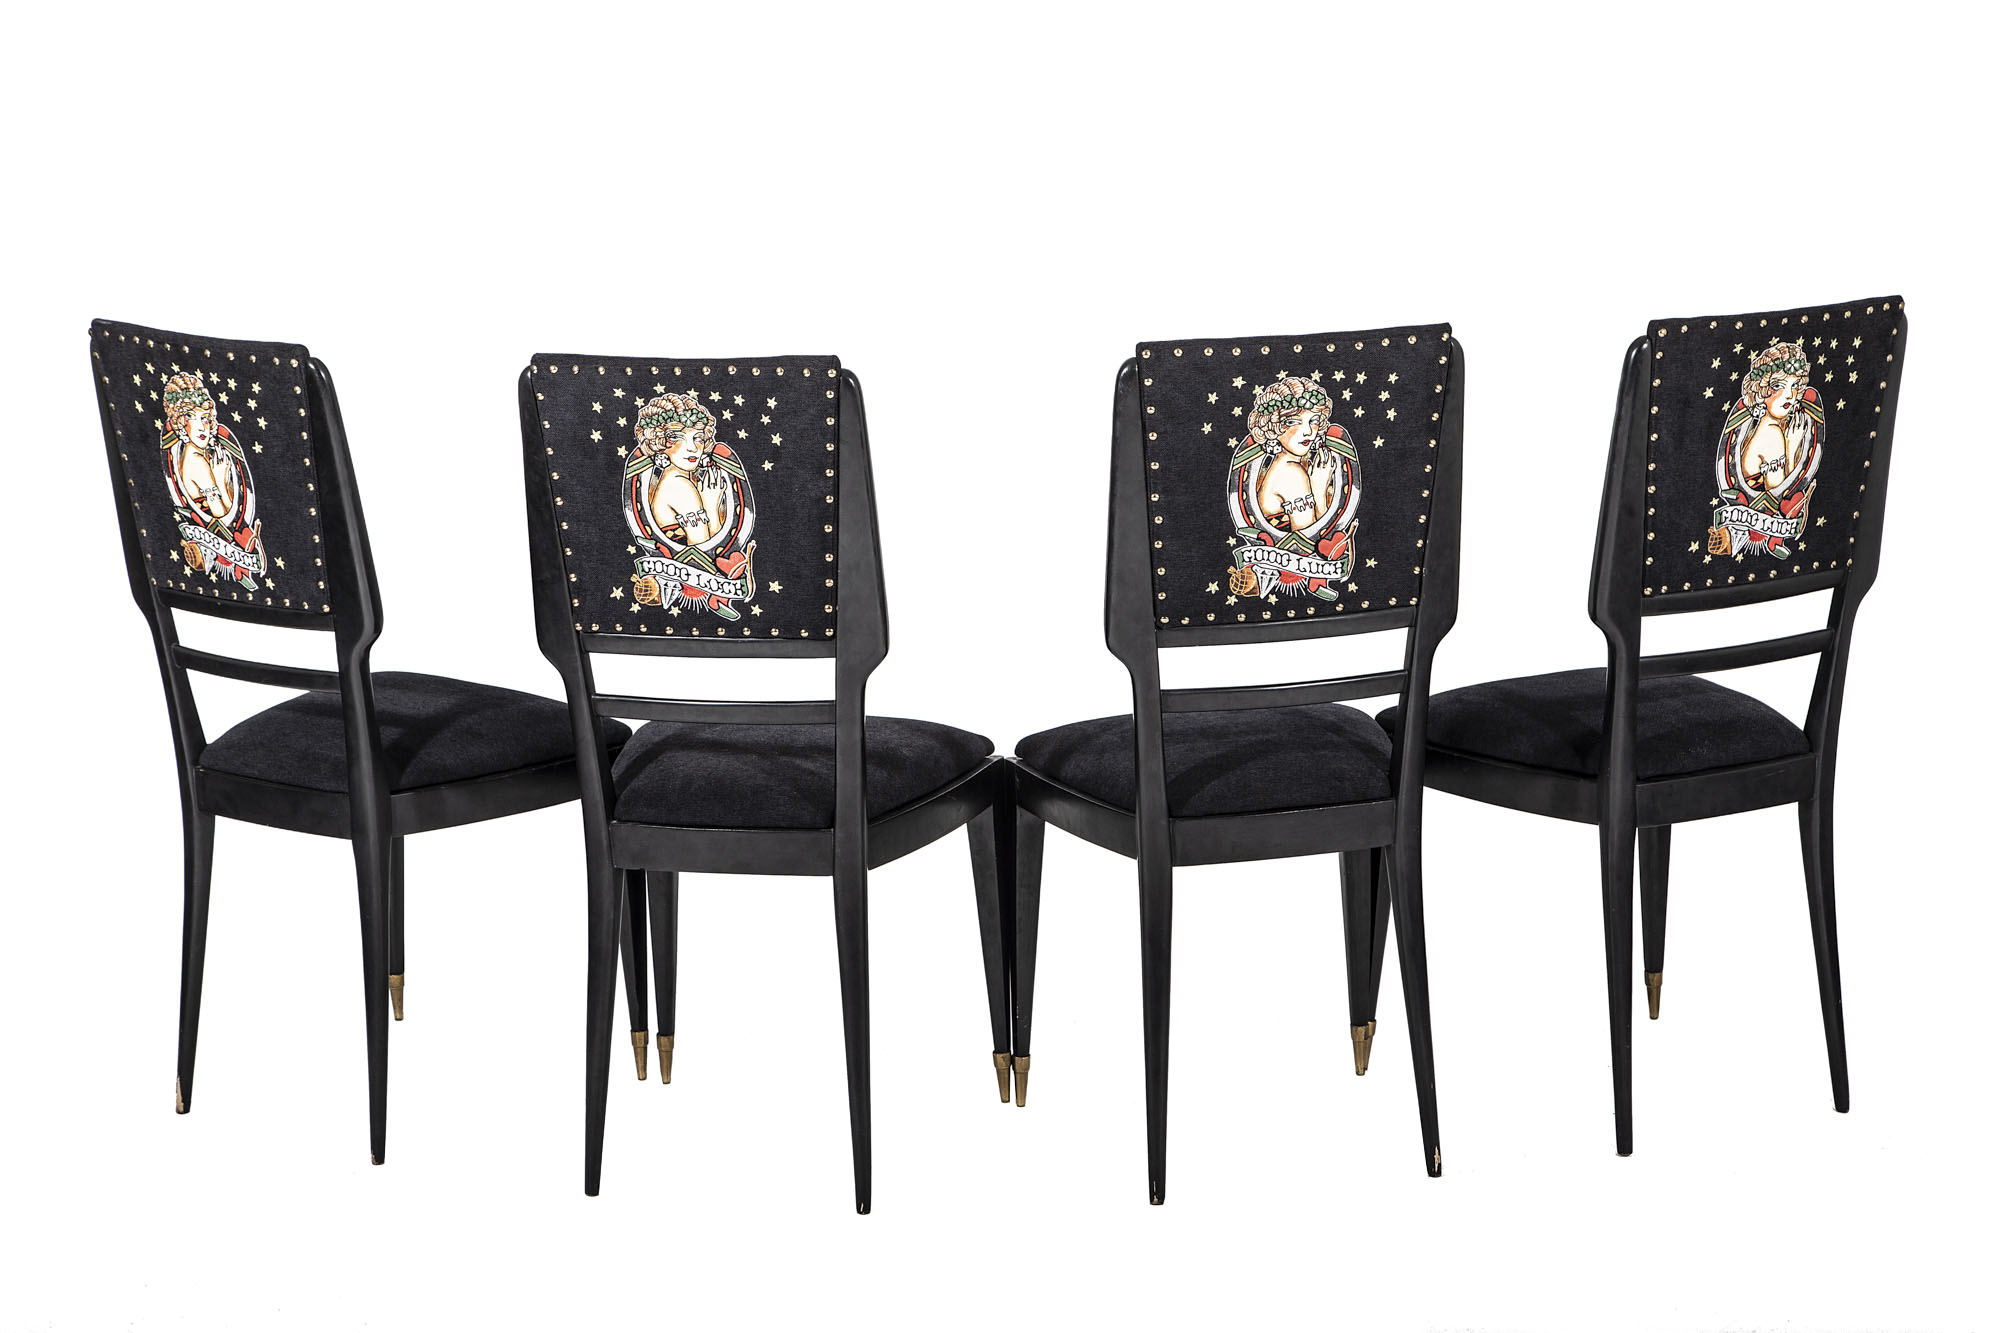 Magnificent Set Of 4 Italian Mid Century Chairs With Sailor Jerry Lady Beatyapartments Chair Design Images Beatyapartmentscom